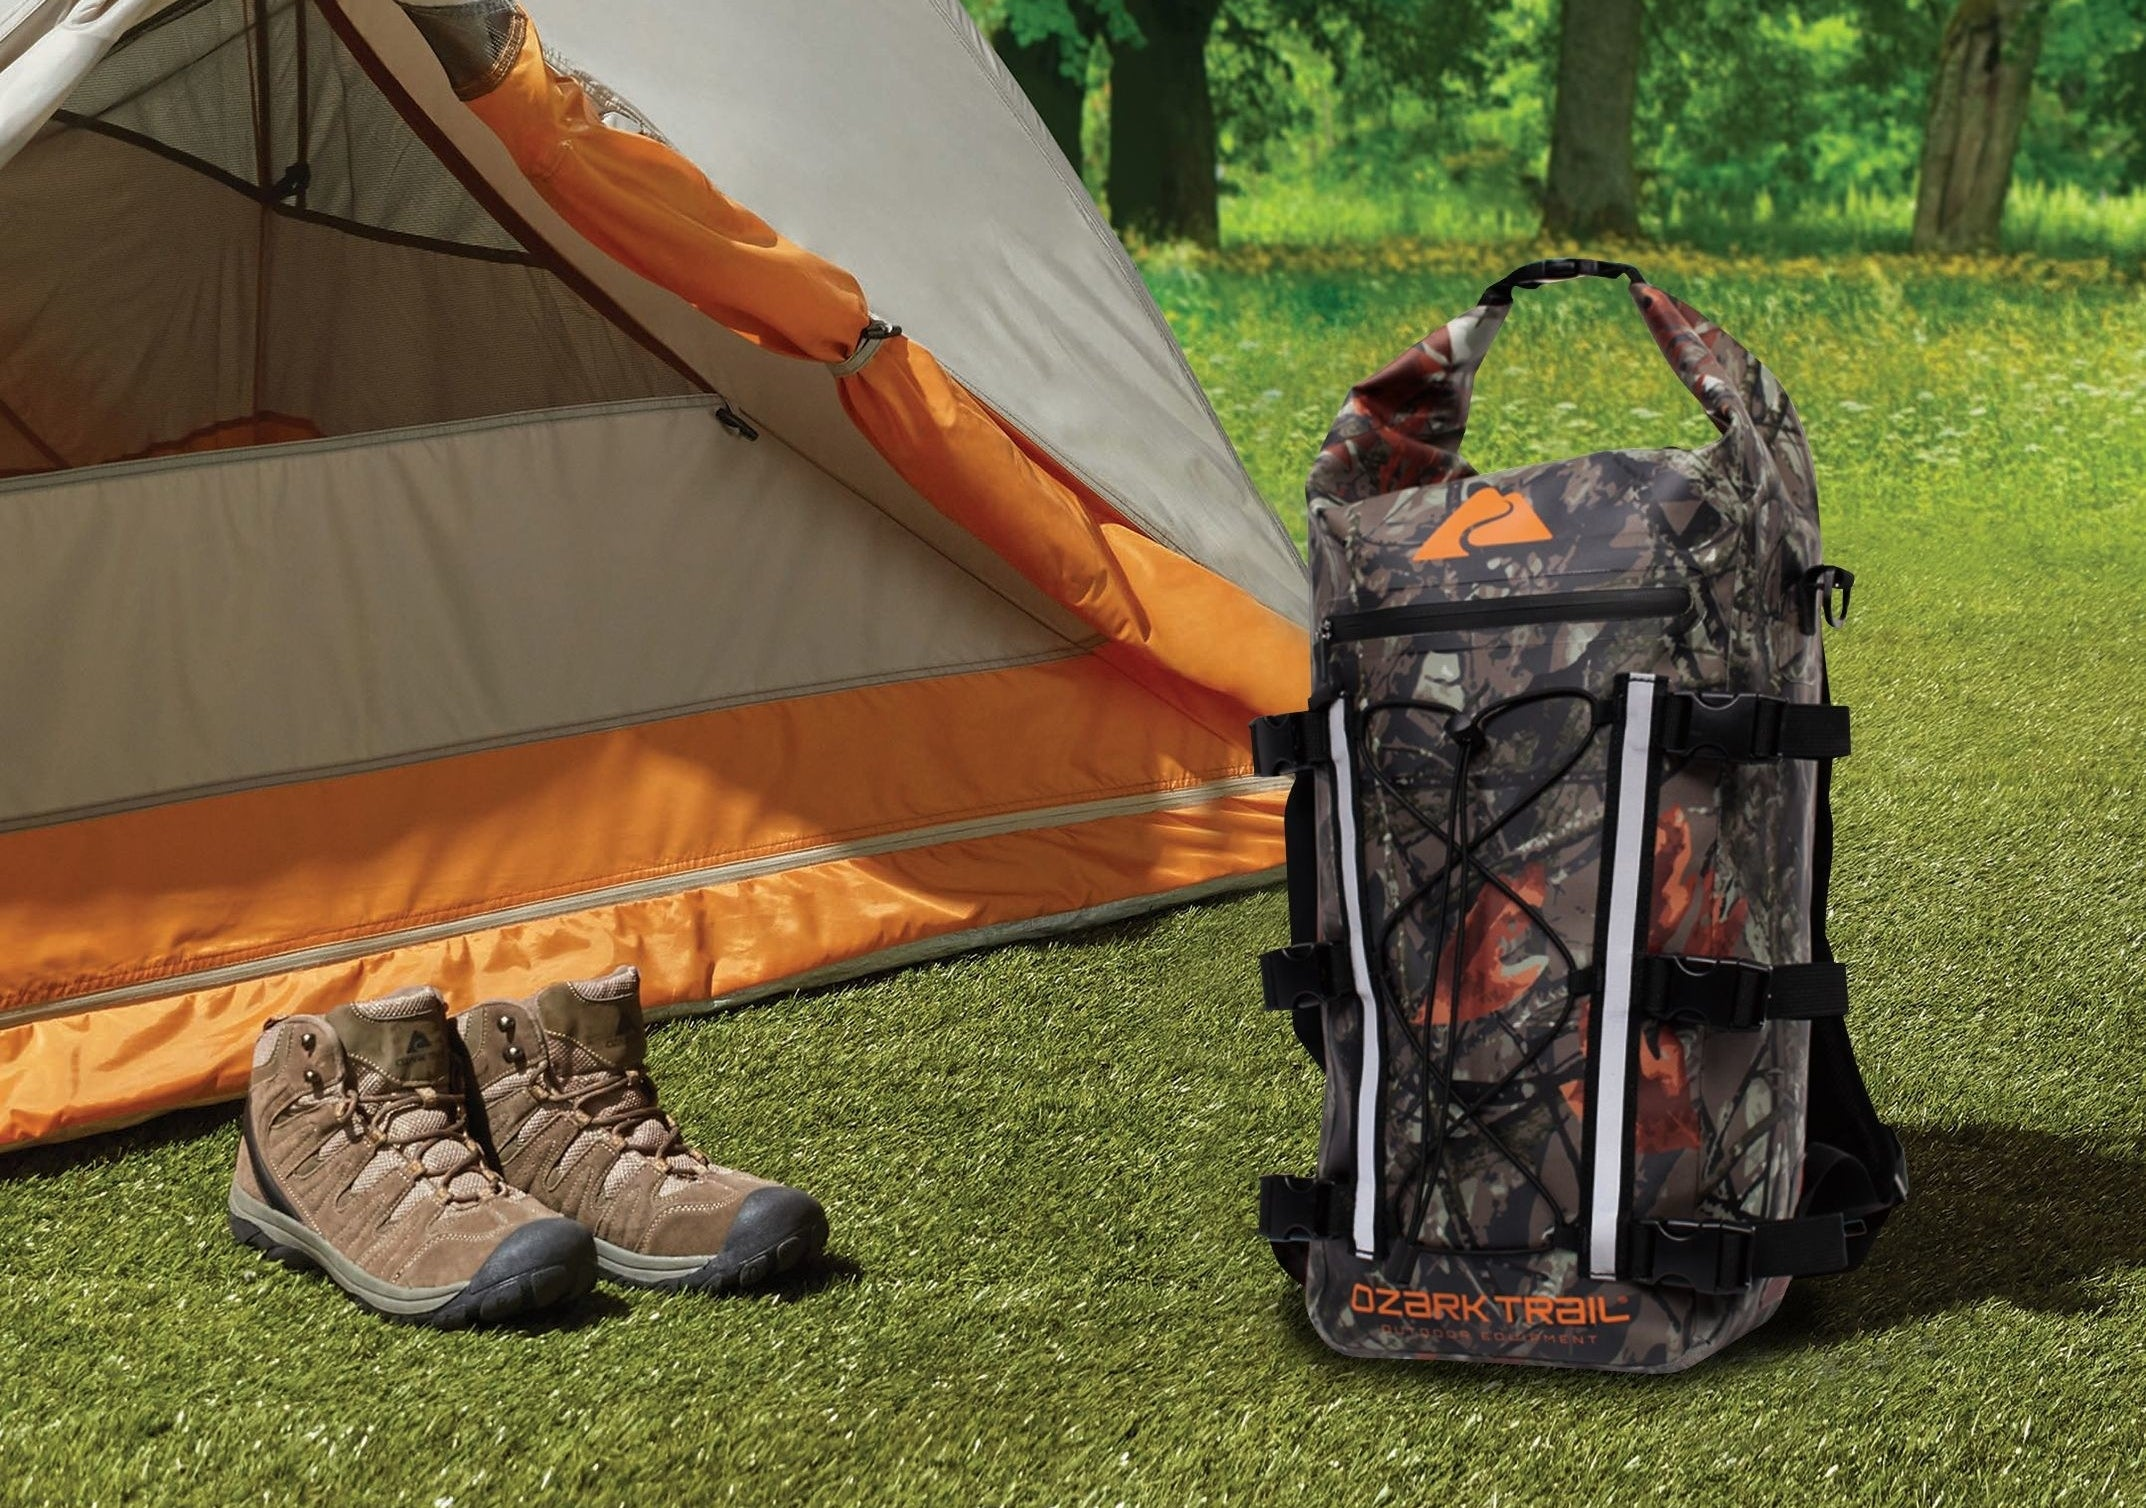 ozark trail camo backpack next to hiking boots and tent